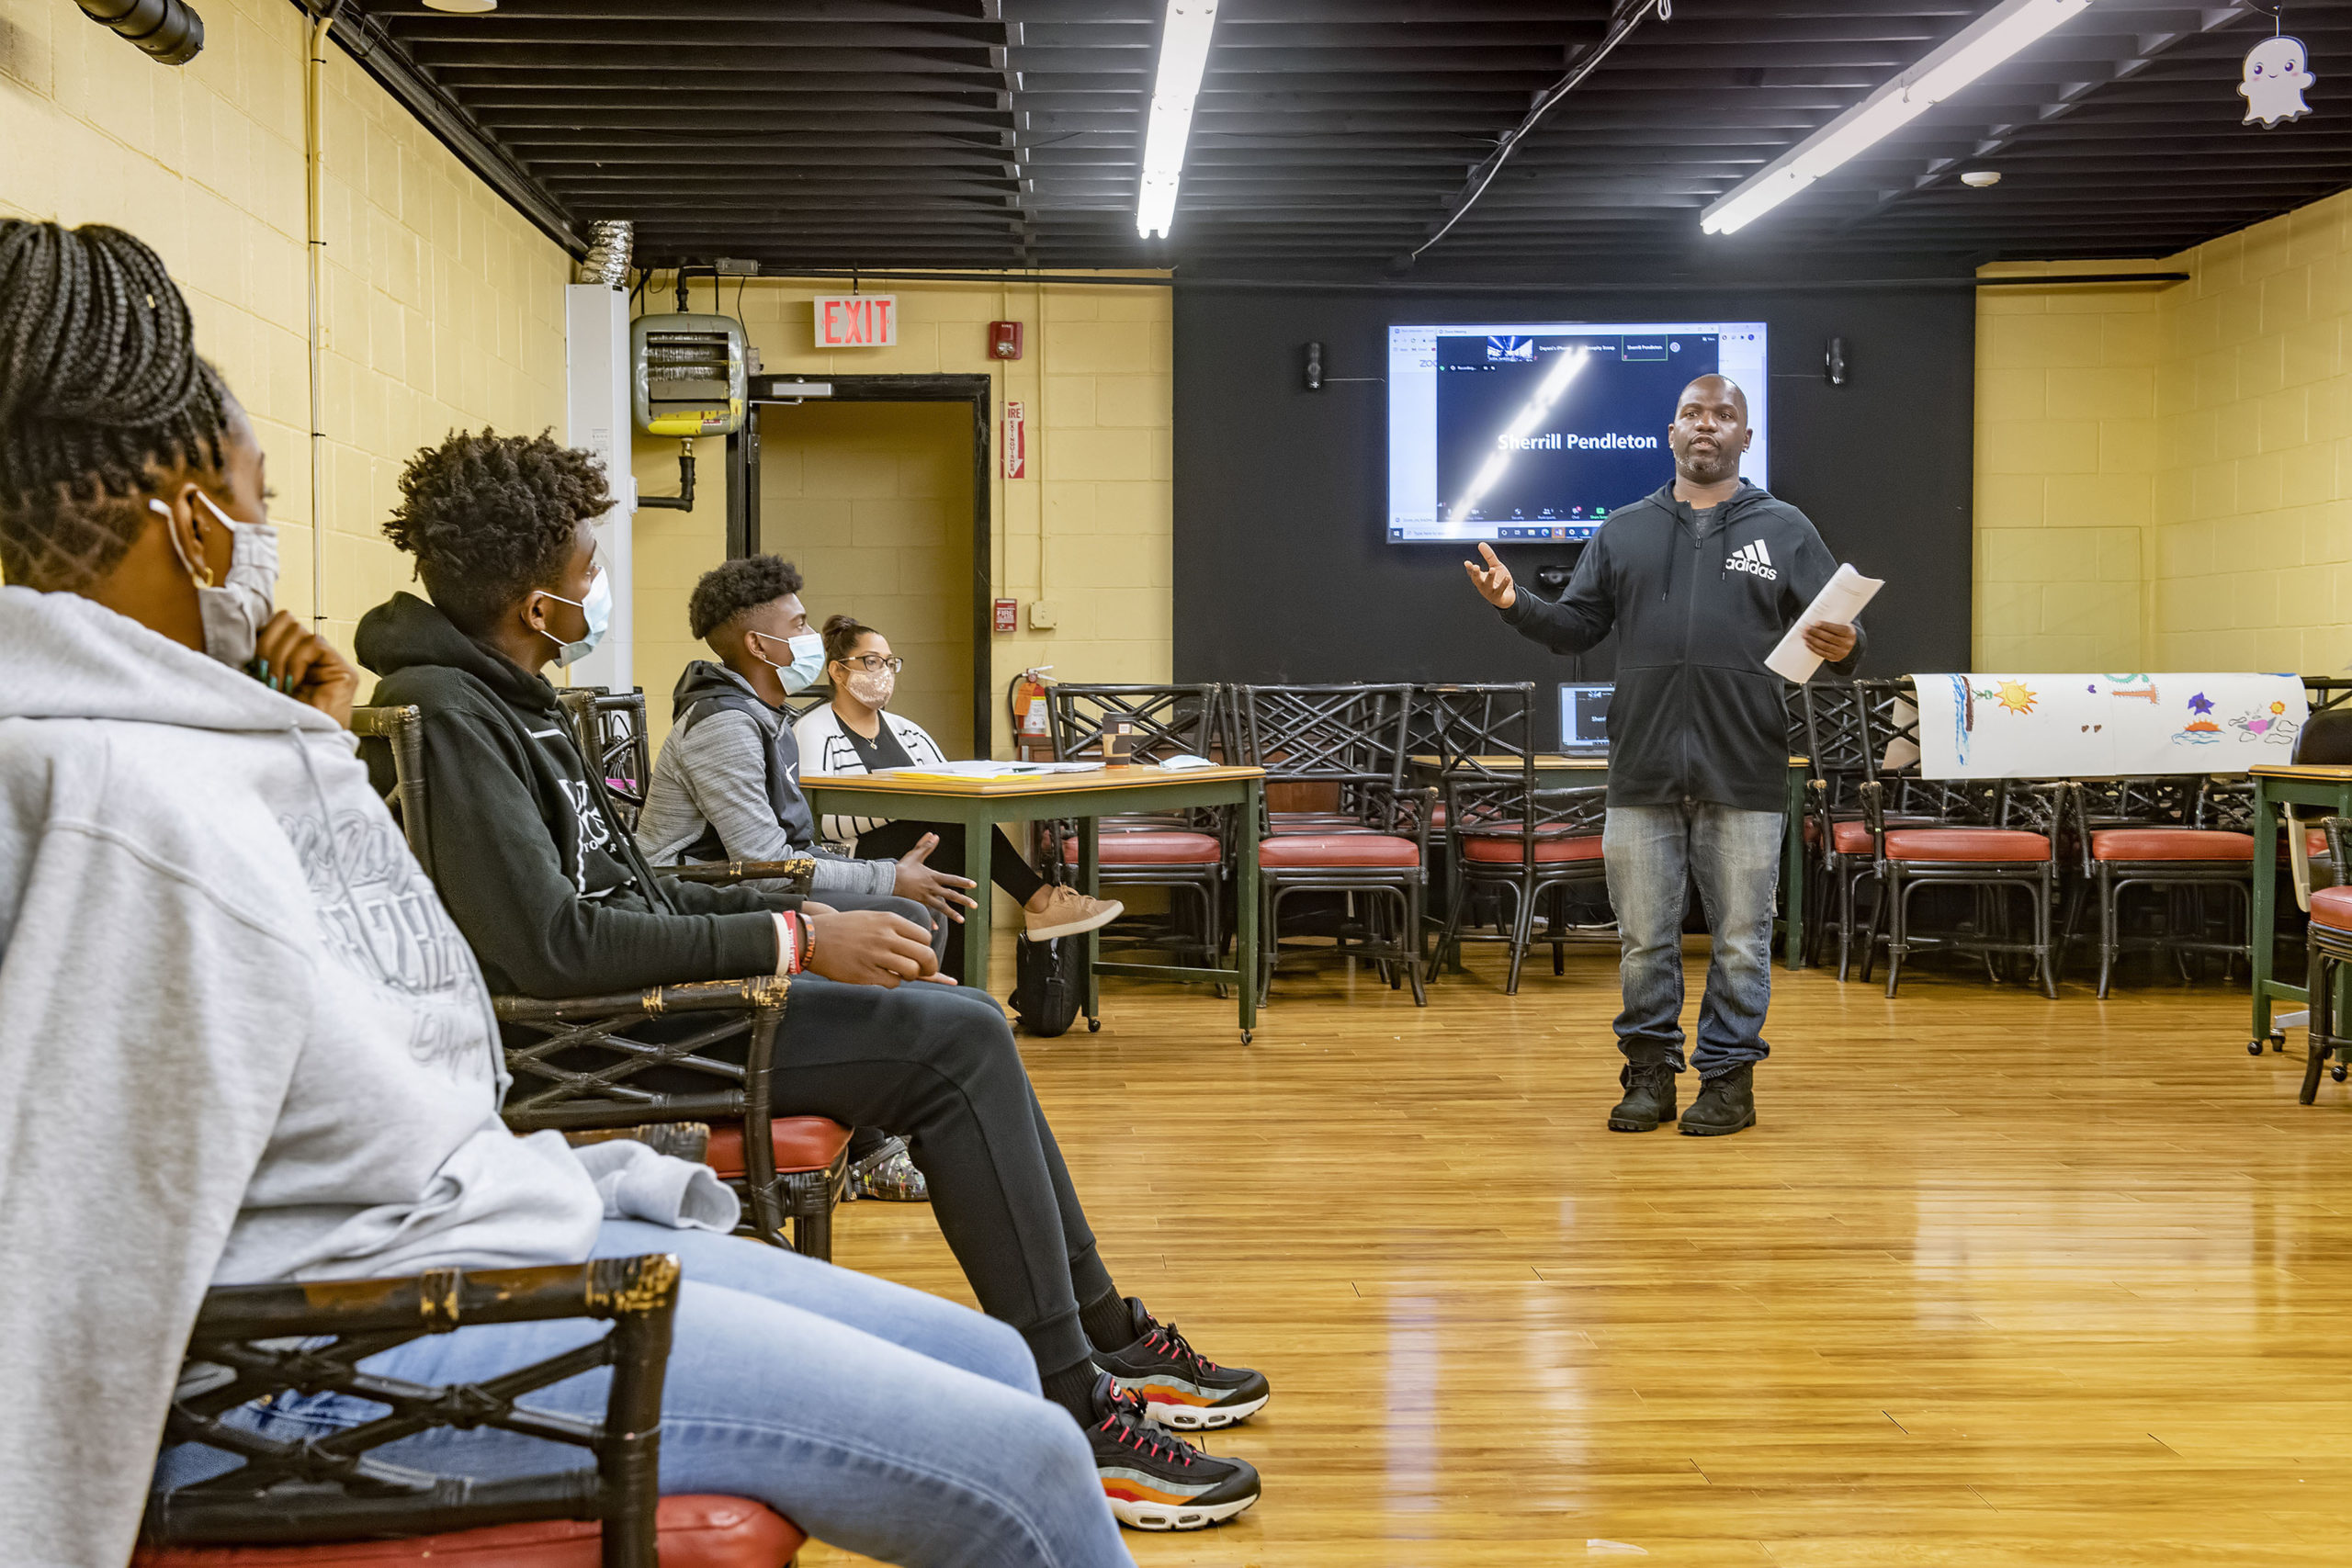 Willie Jenkins teaches a workshop on African/American History to a group of teens as part of the Zenith Youth Program at the Bridgehampton Child Care and Recreational Center on Friday evening.  MICHAEL HELLER